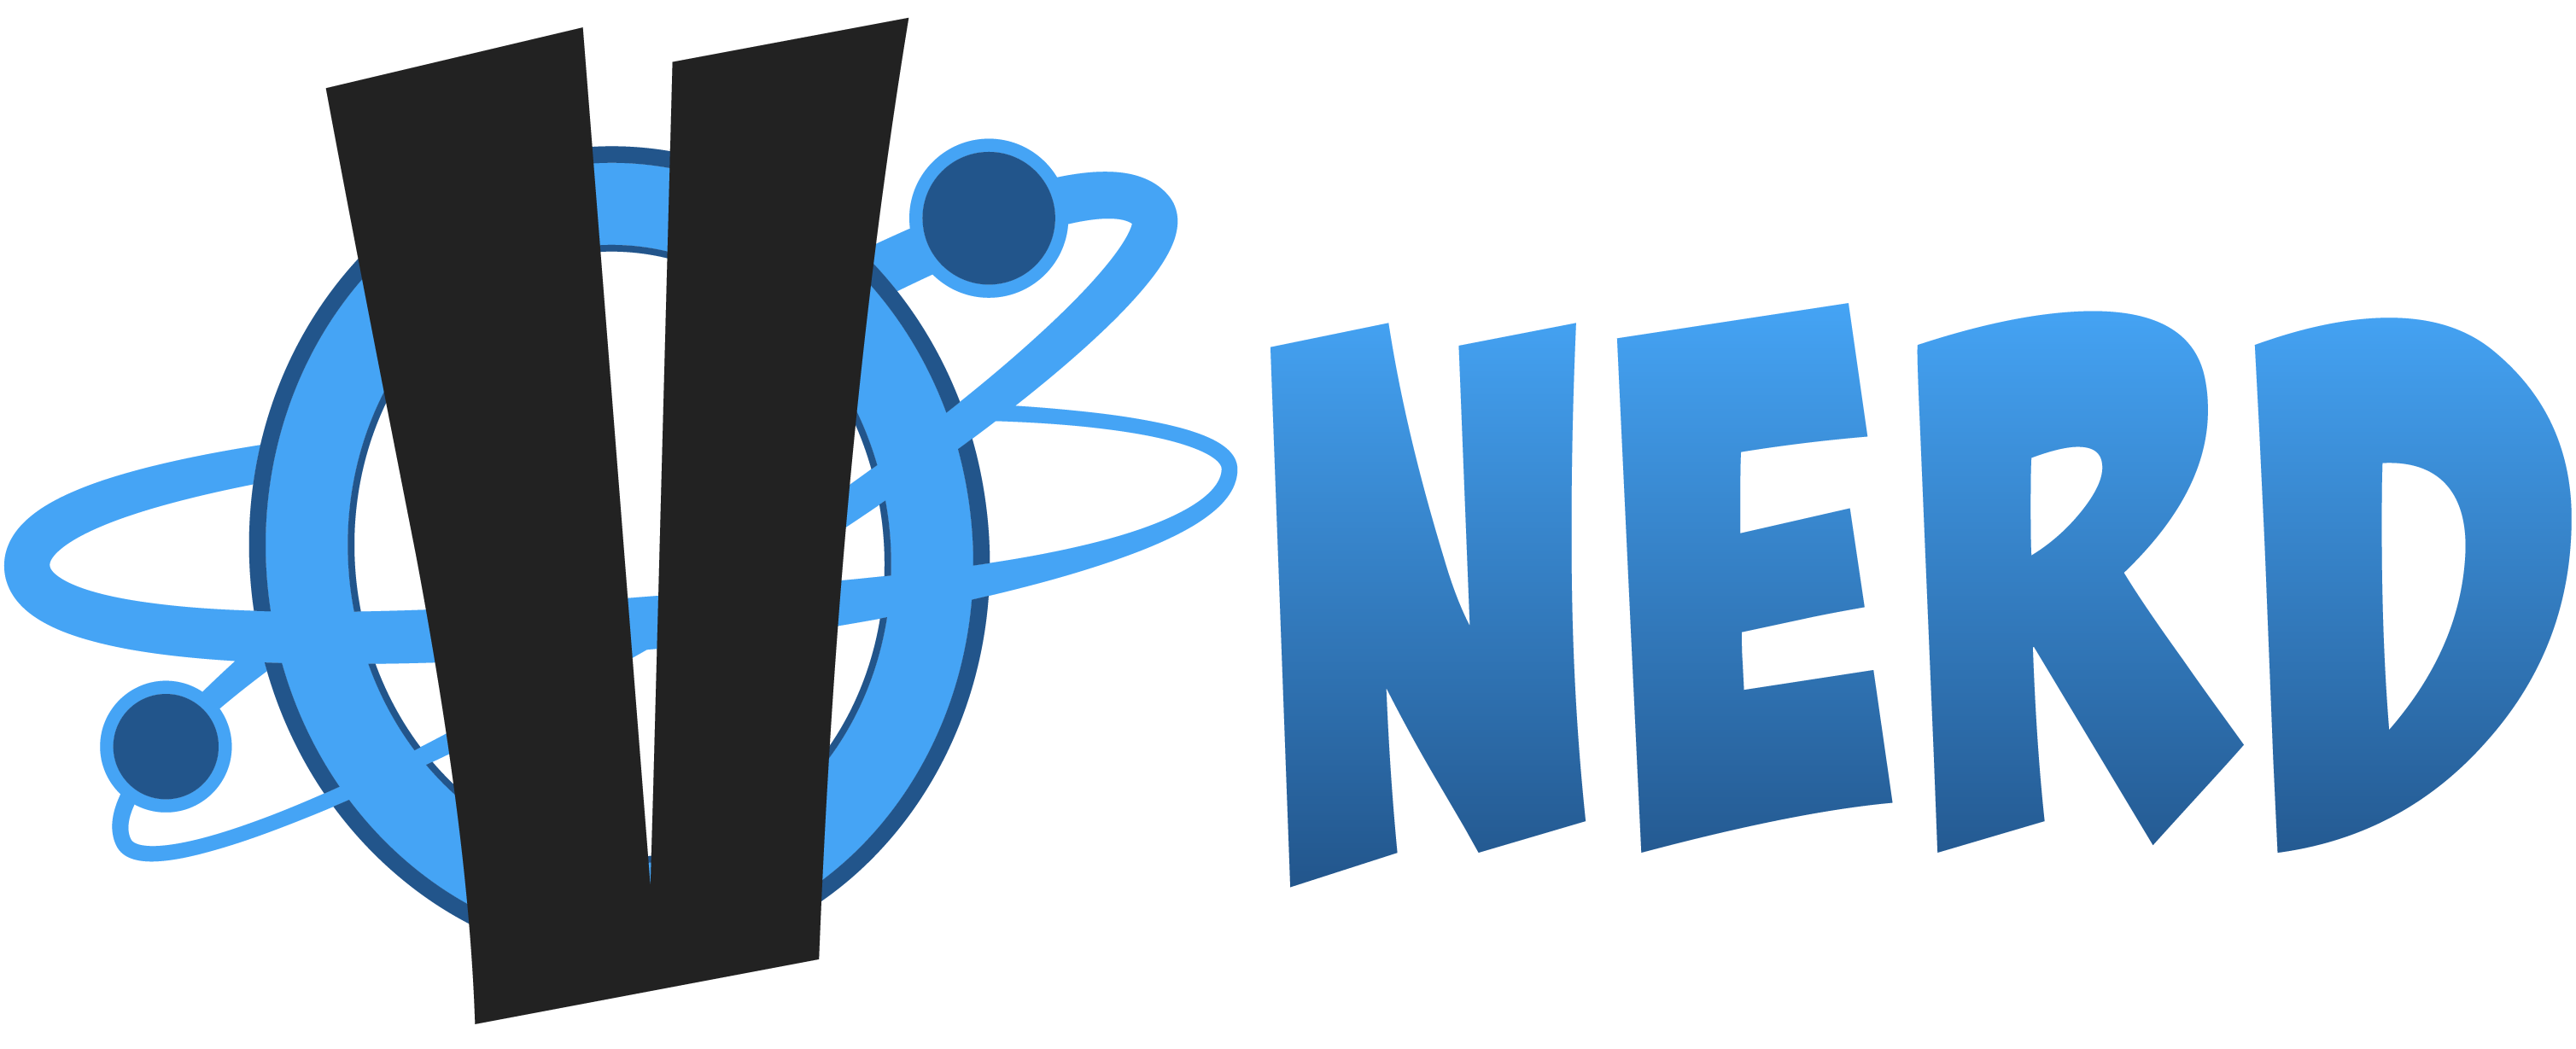 voiceover nerd productions, inc. Voiceover narration by shawn fitzmaurice. elearning instructional narration, industrial narration corporate narration commercial voiceover radio television web Spotify youtube